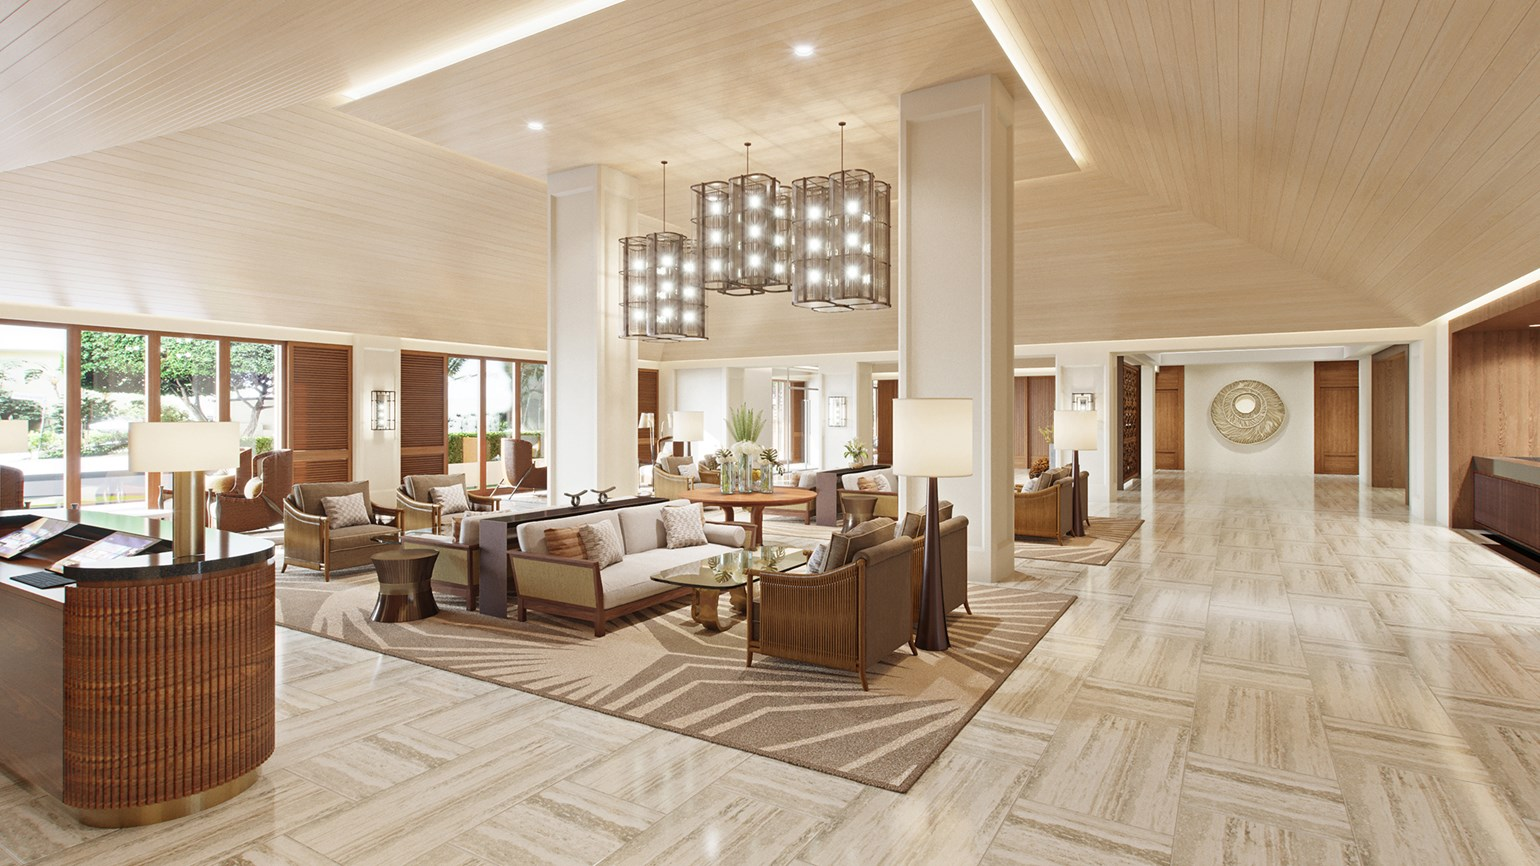 'Elevated, boutique' vibe for Waikiki Parc refurb, rebranding